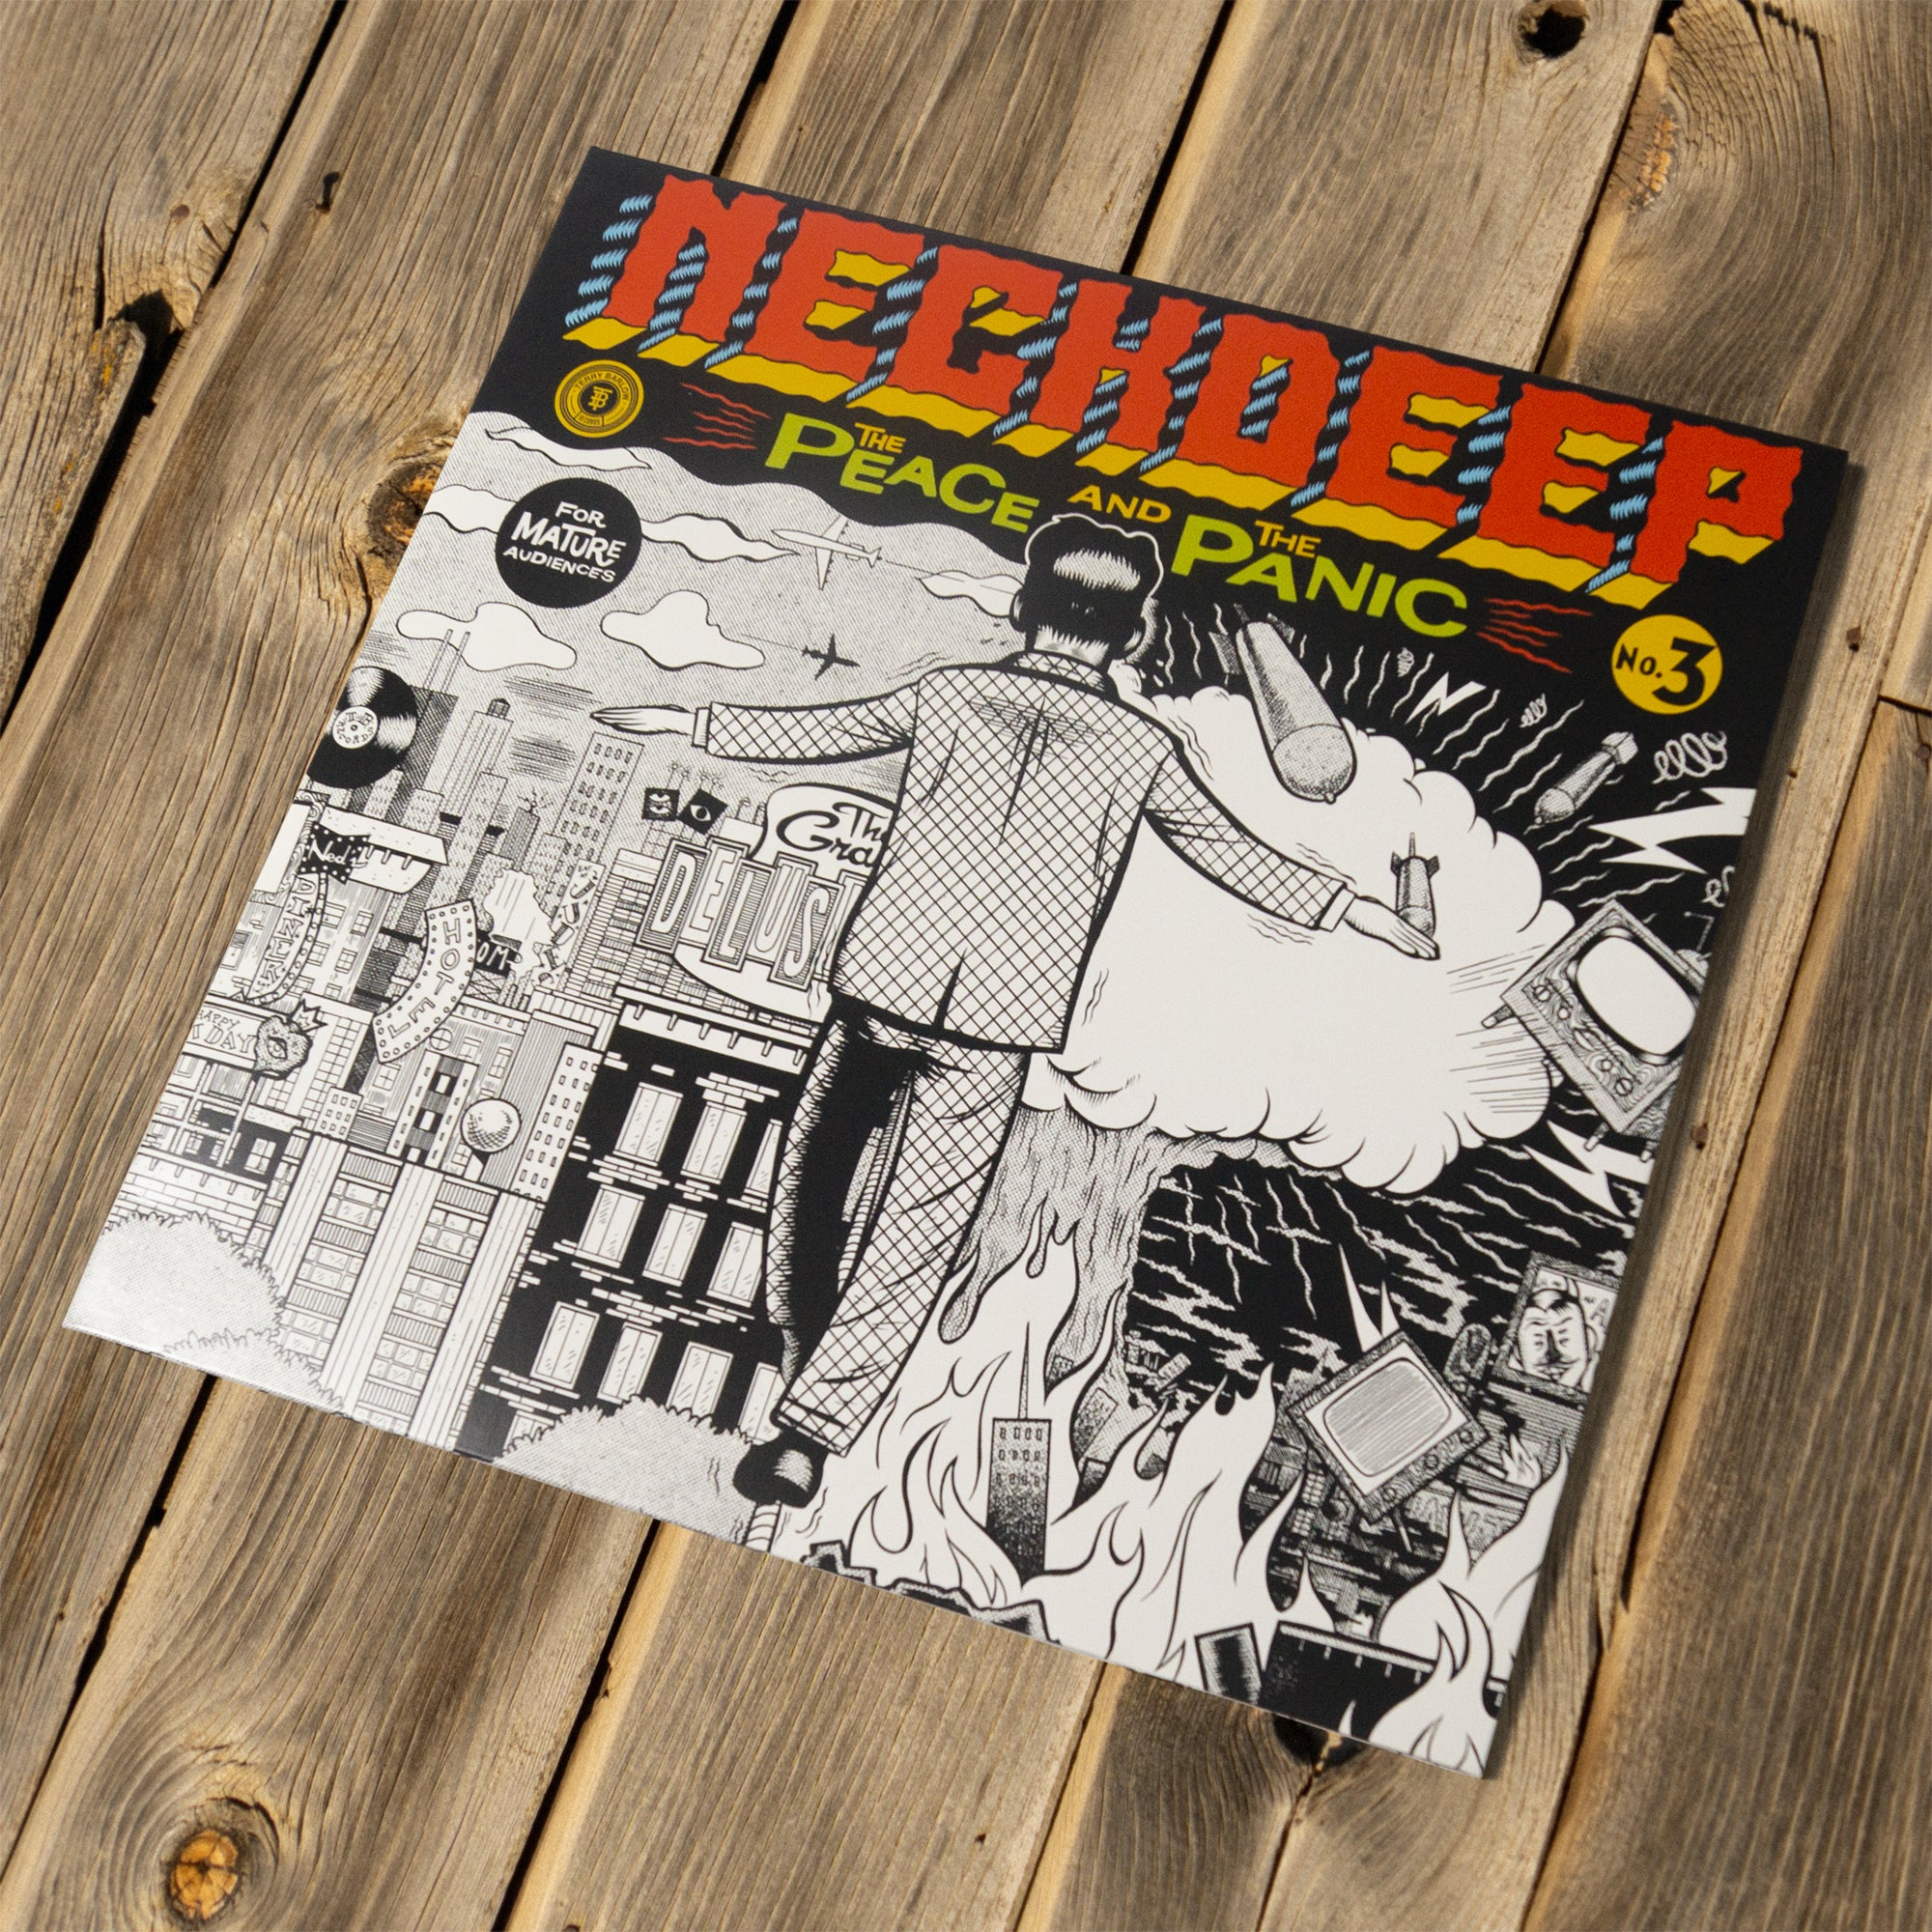 NECK DEEP - THE PEACE AND THE PANIC - 12 VINYL